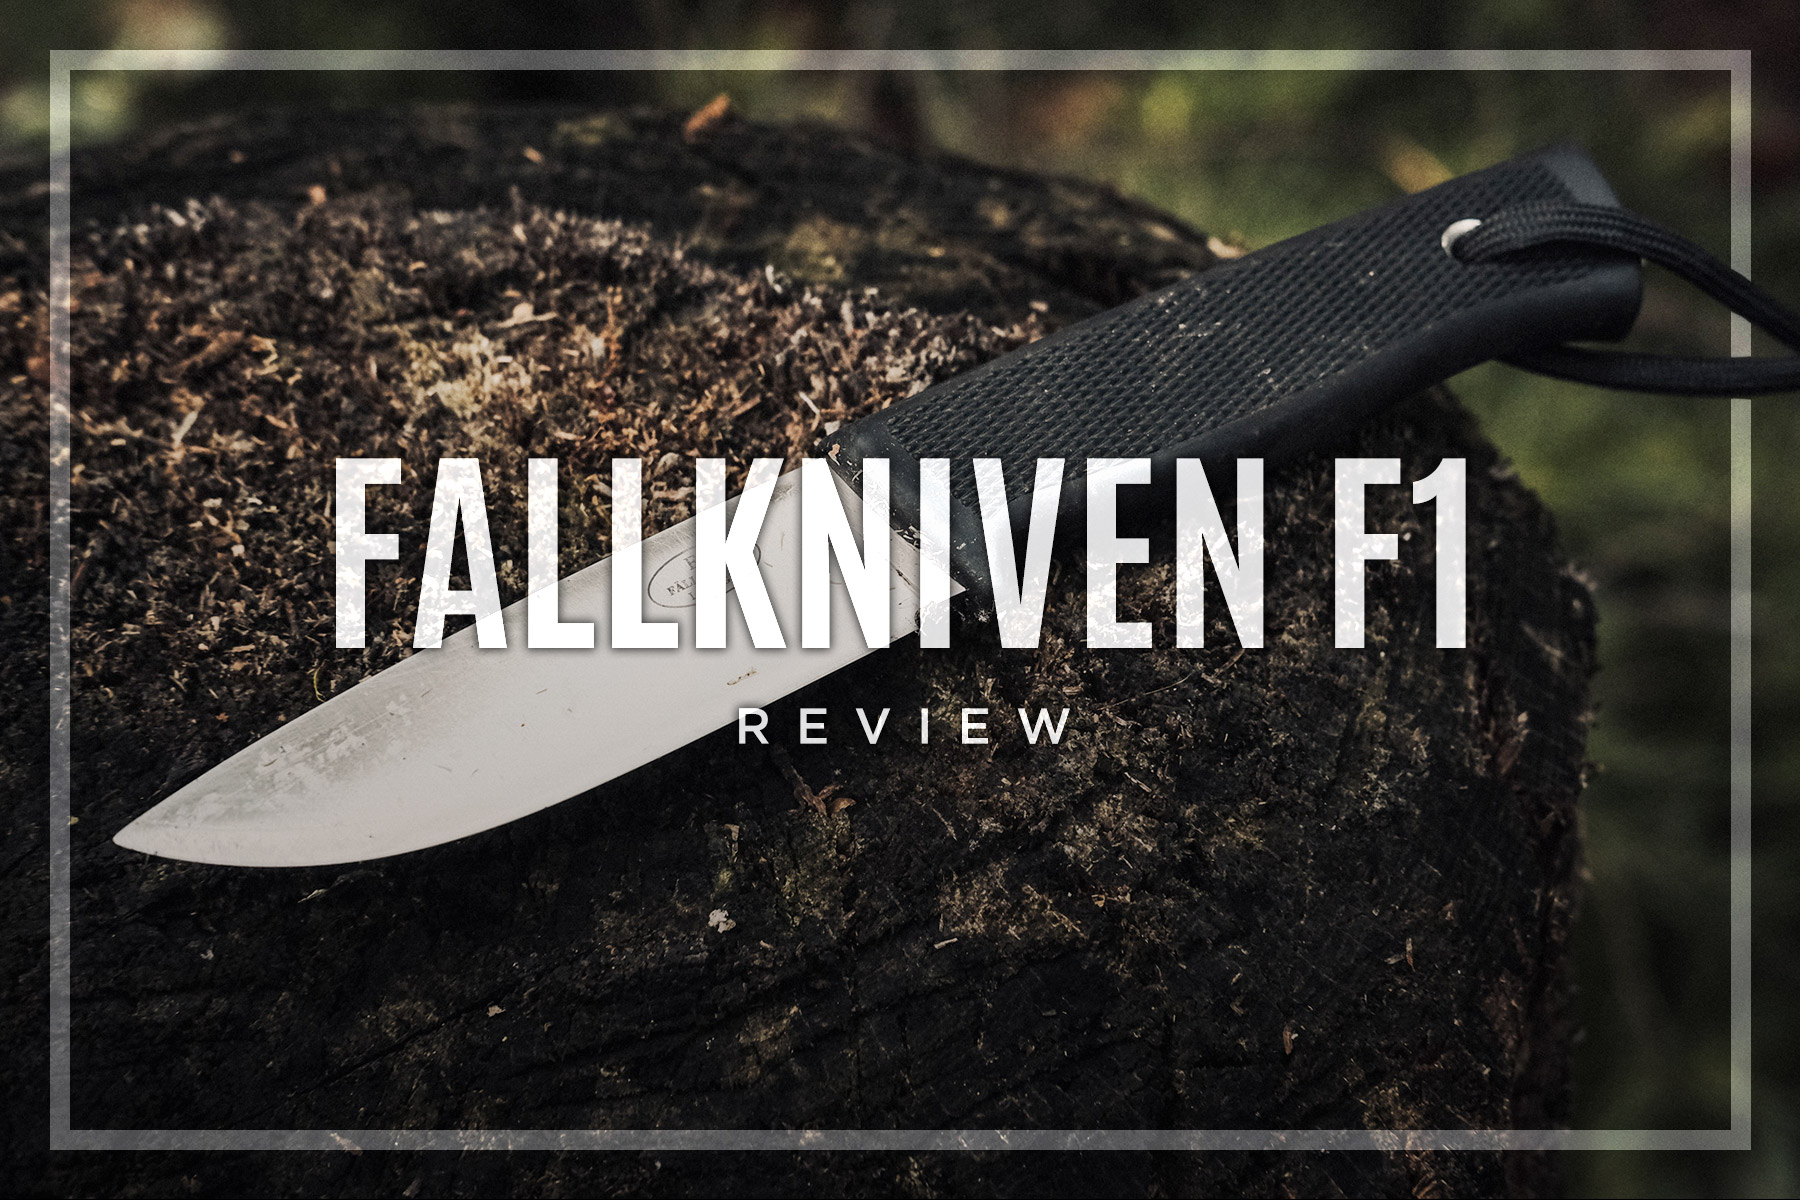 Year Long Fallkniven F1 Review • Swedish Air Force Pilot